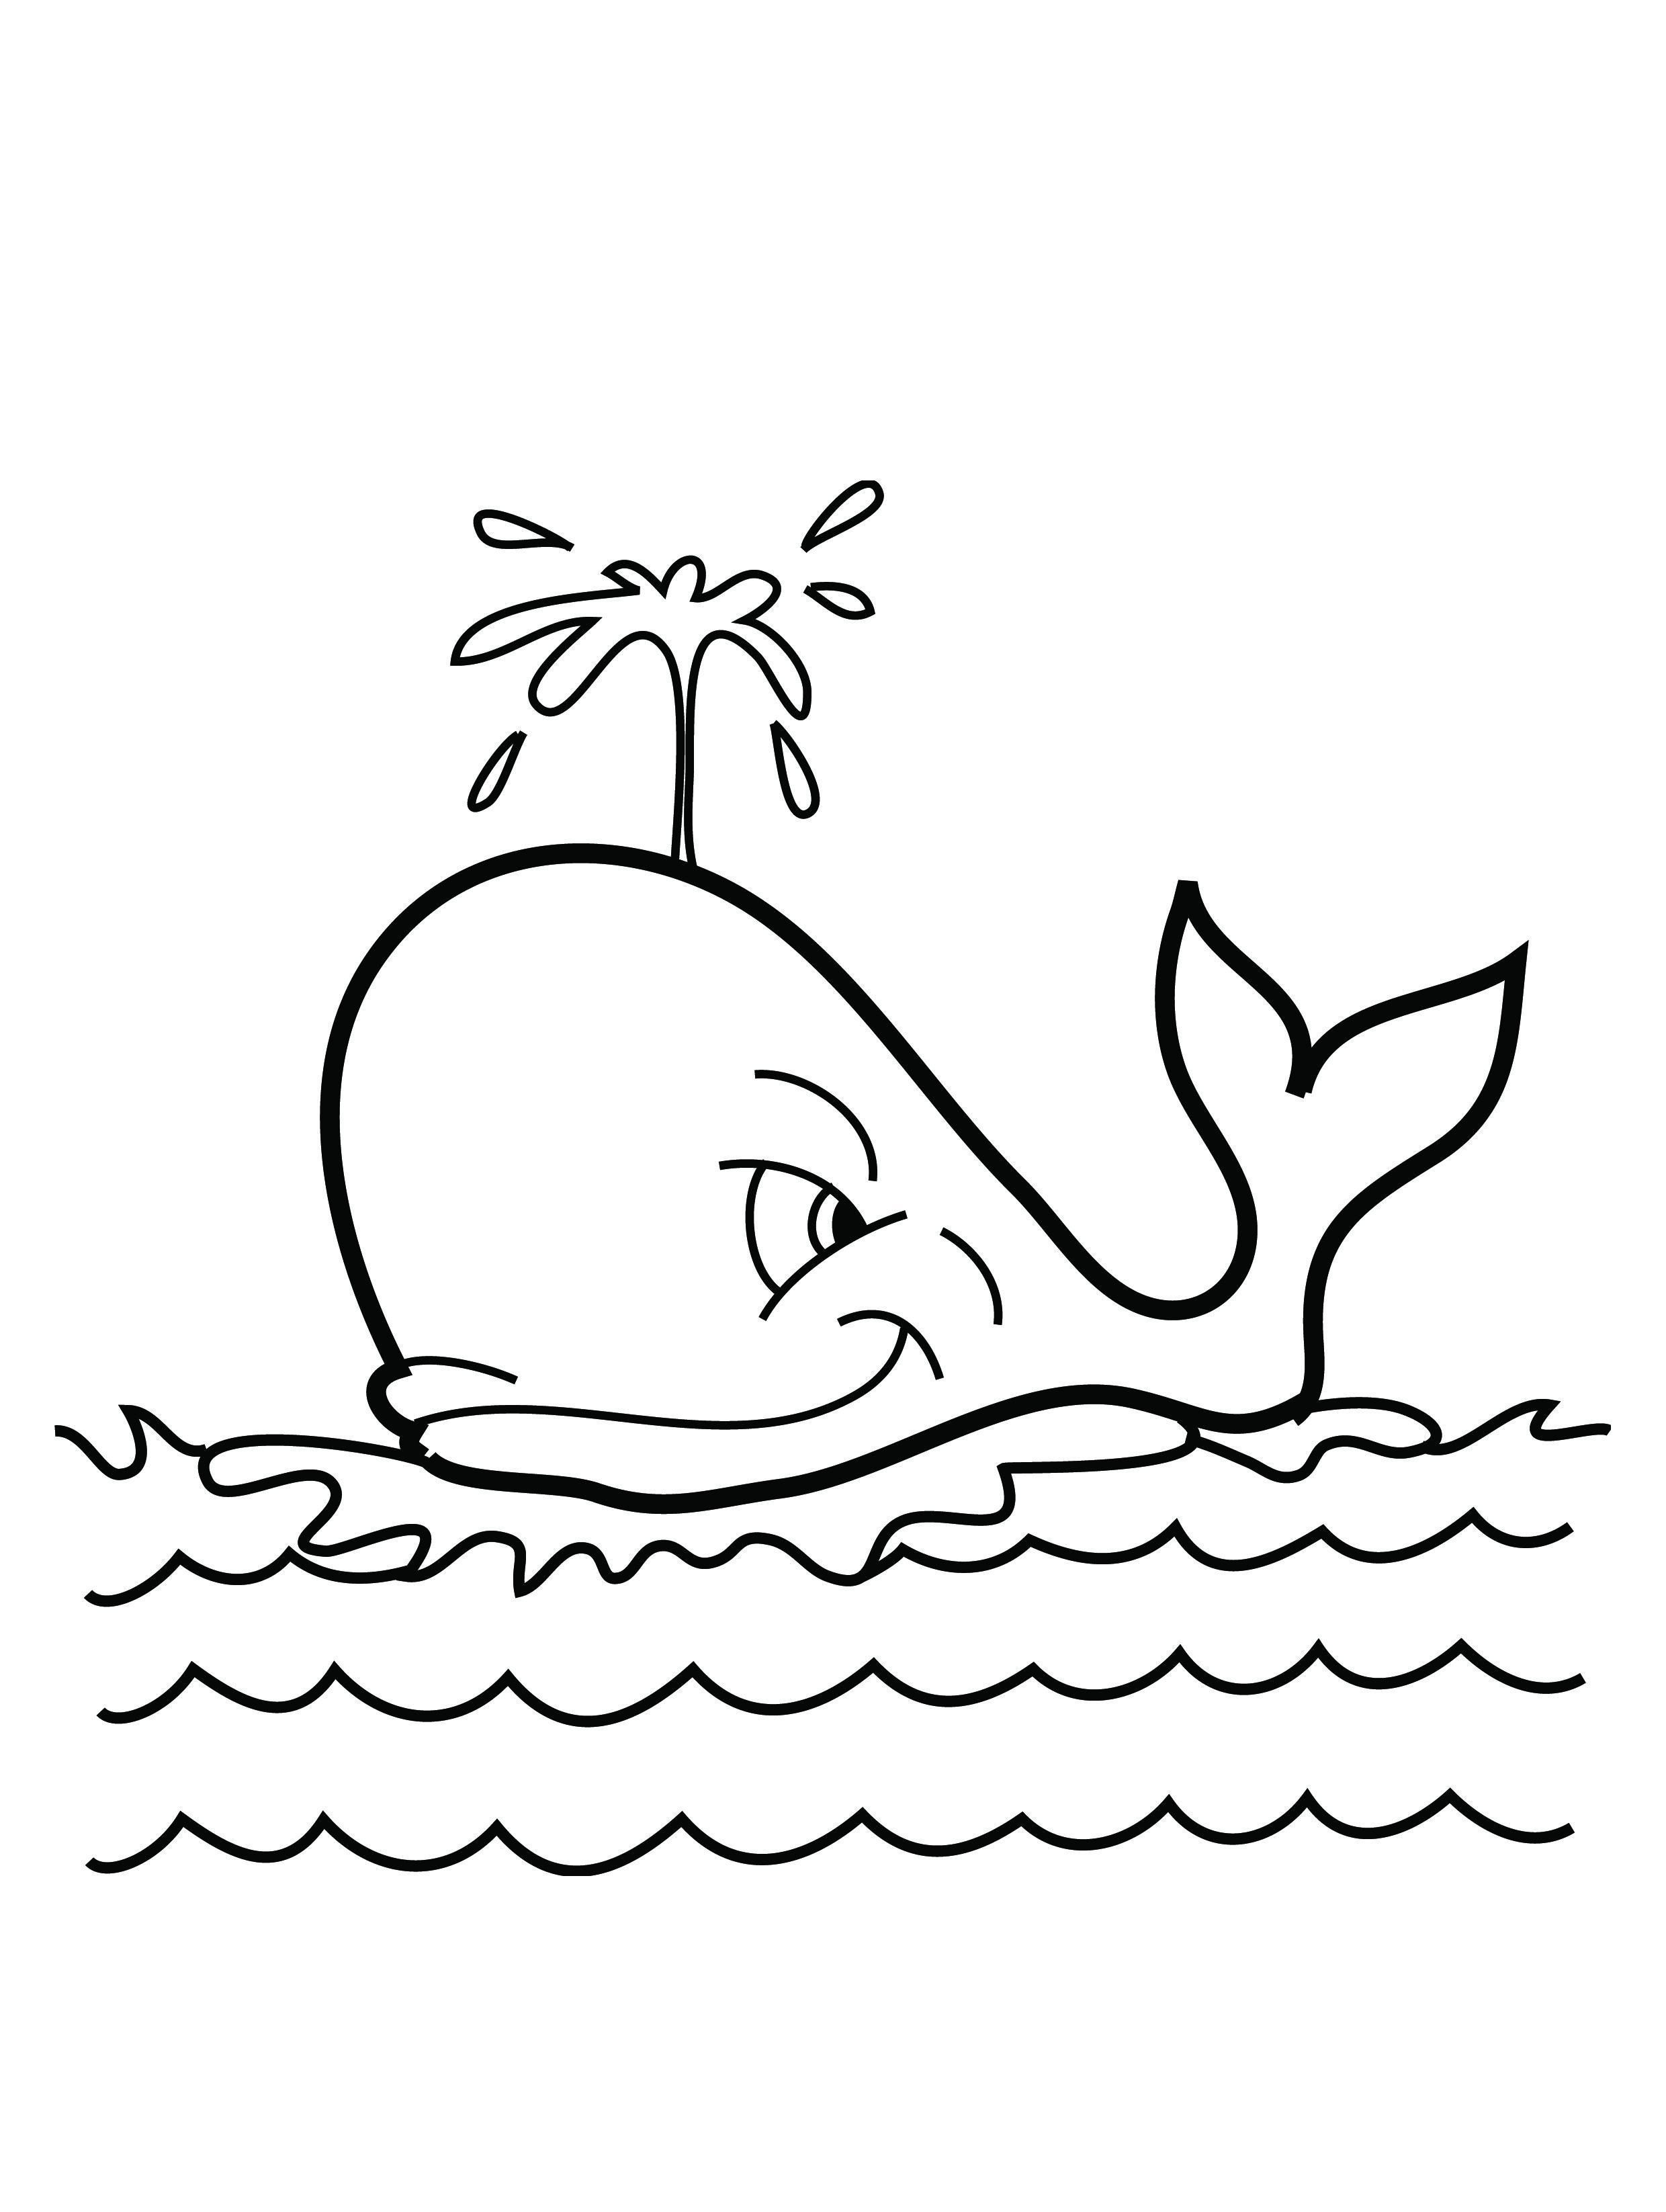 Whale Coloring Pages For Kids Jpg 2 480 3 292 Pixels Whale